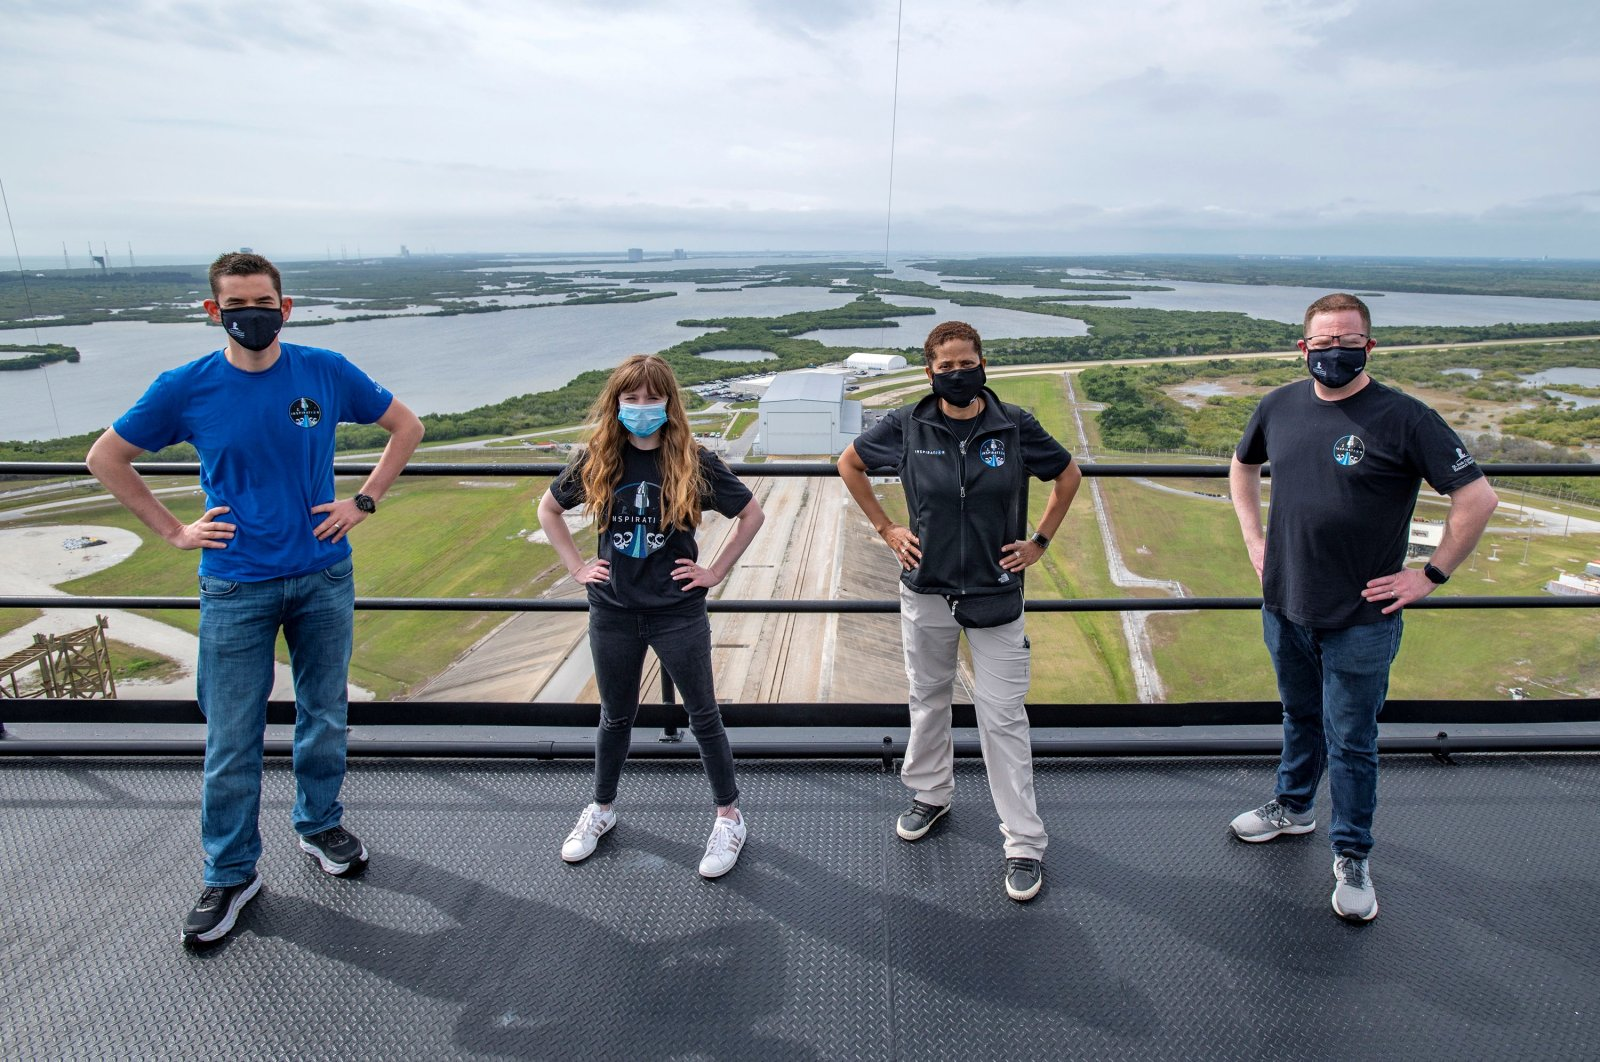 (L-R) Jared Isaacman, Hayley Arceneaux, Sian Proctor and Chris Sembroski pose for a photo at the SpaceX launch tower at NASA's Kennedy Space Center at Cape Canaveral, Florida, U.S., March 29, 2021. (SpaceX Handout via Reuters)